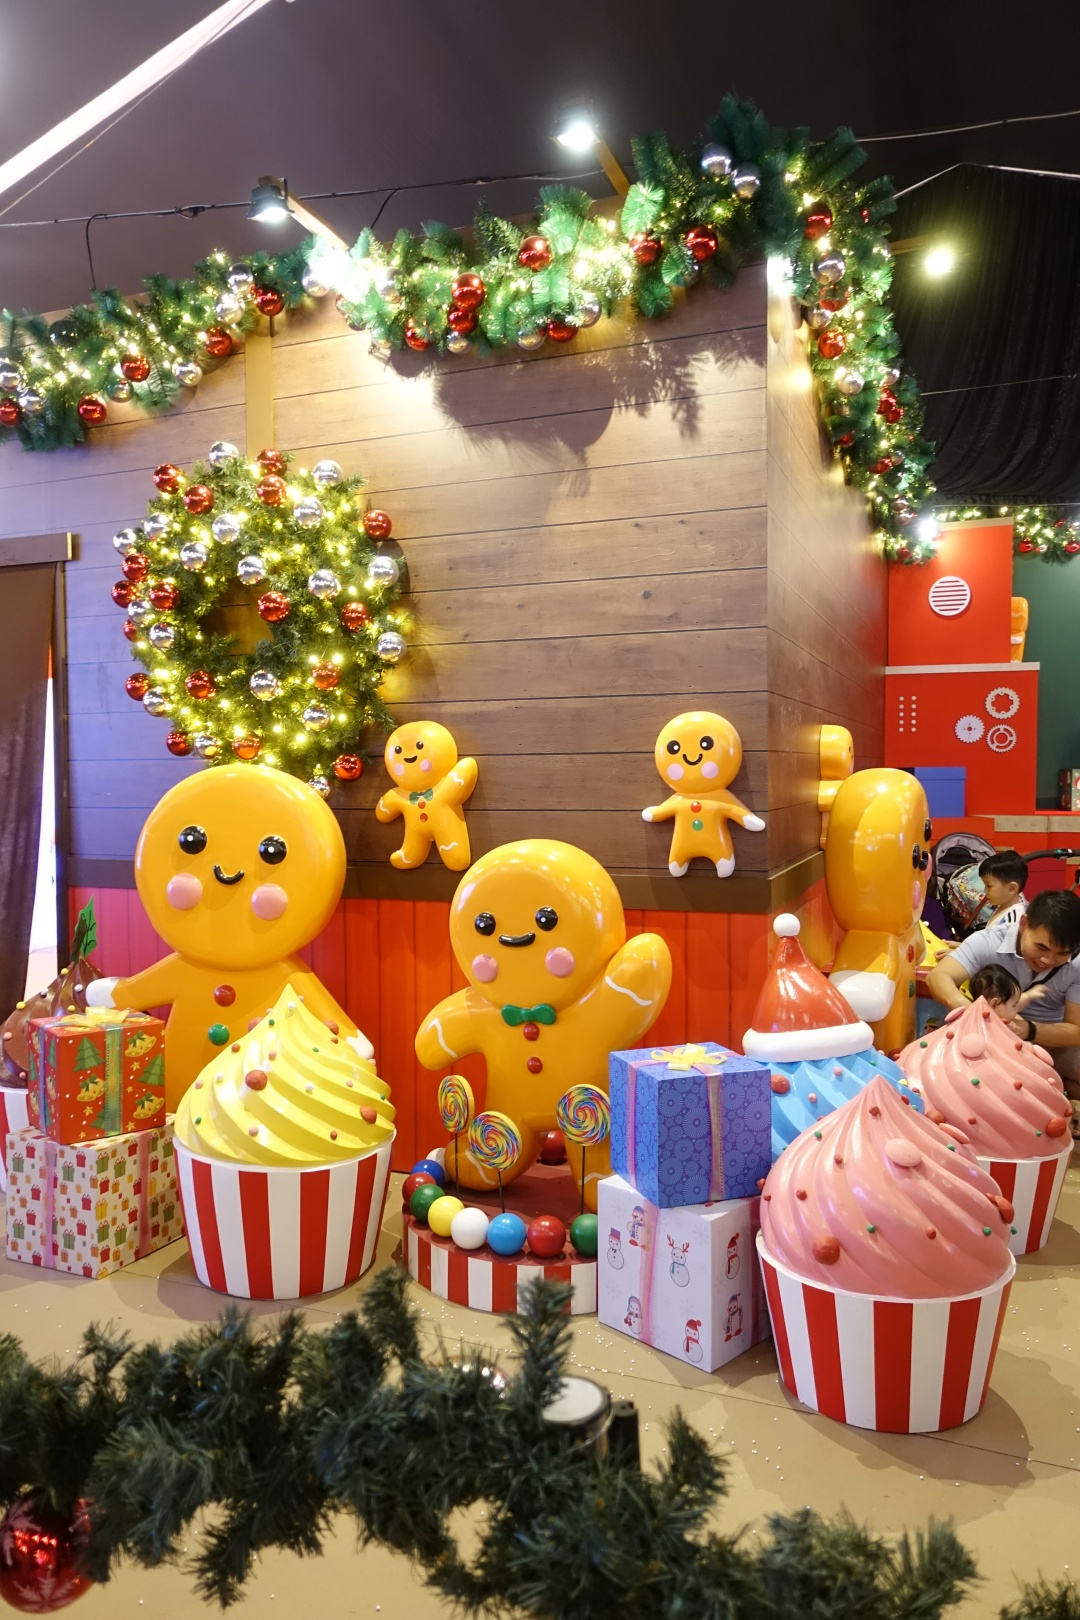 Christmas Wonderland 2019: Santa's Workshop | joanne-khoo.com